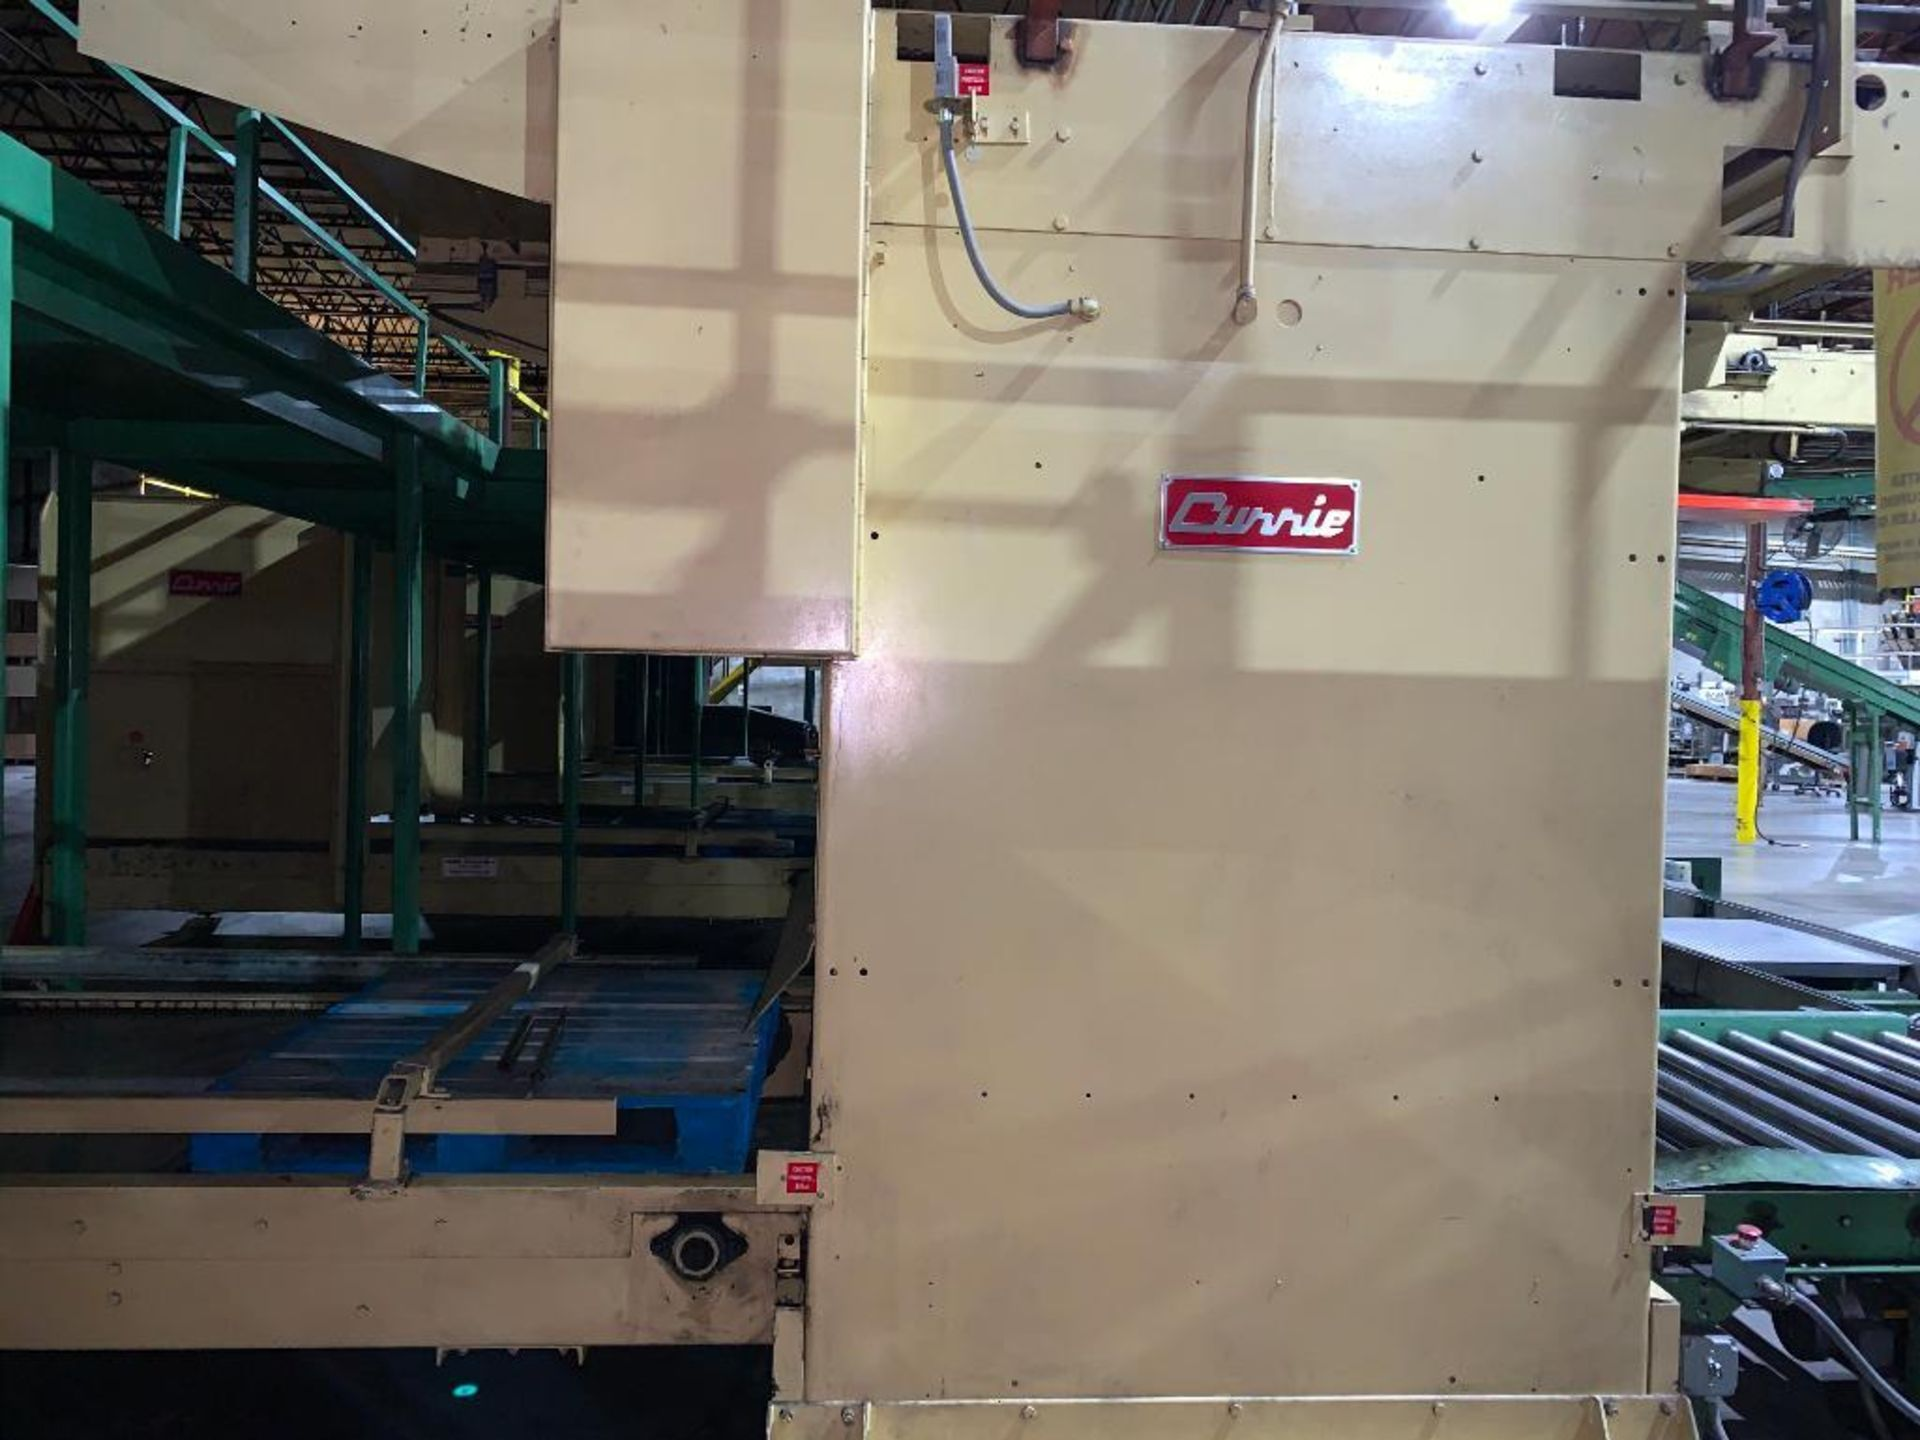 1992 Currie top to bottom palletizer, machine number LSP-5-1177 - Image 3 of 53